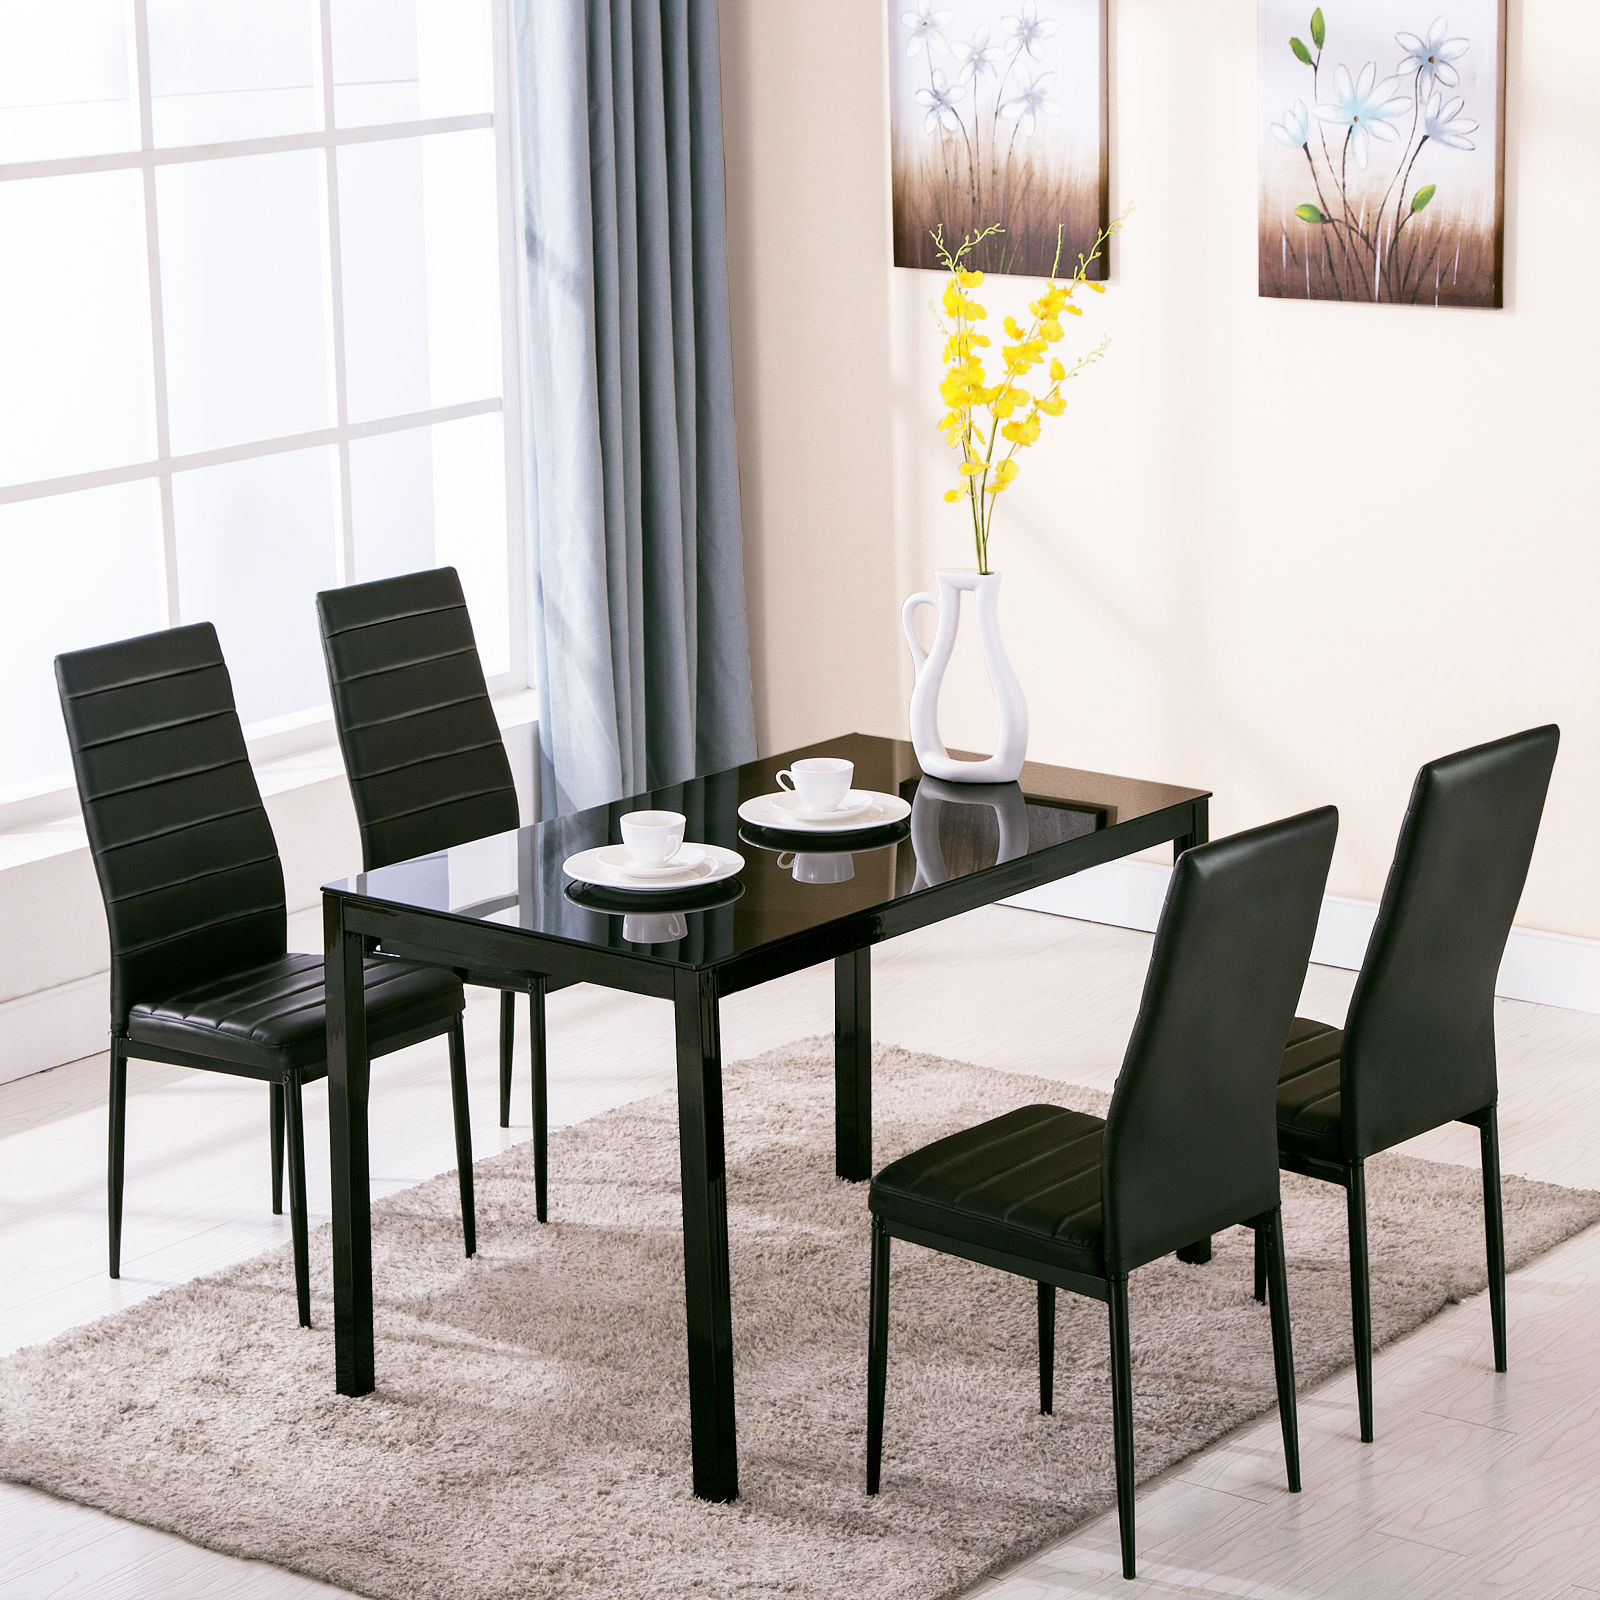 Breakfast Chairs Details About Set Of Glass Metal Dining Table Furniture And 4 Chairs Breakfast Kitchen Room